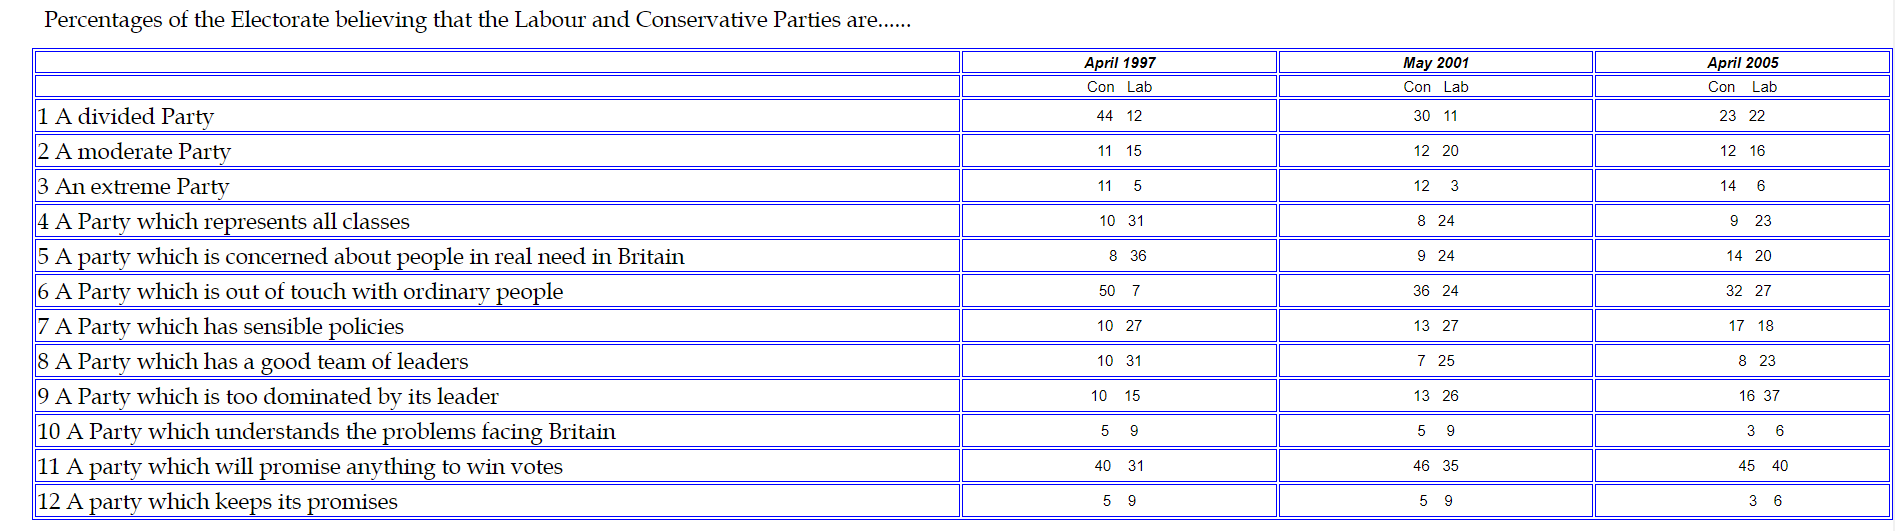 Electioncomp970105-Percentages-of-the-Electorate-believing-that-the-Labour-and-Conservative-Parties.